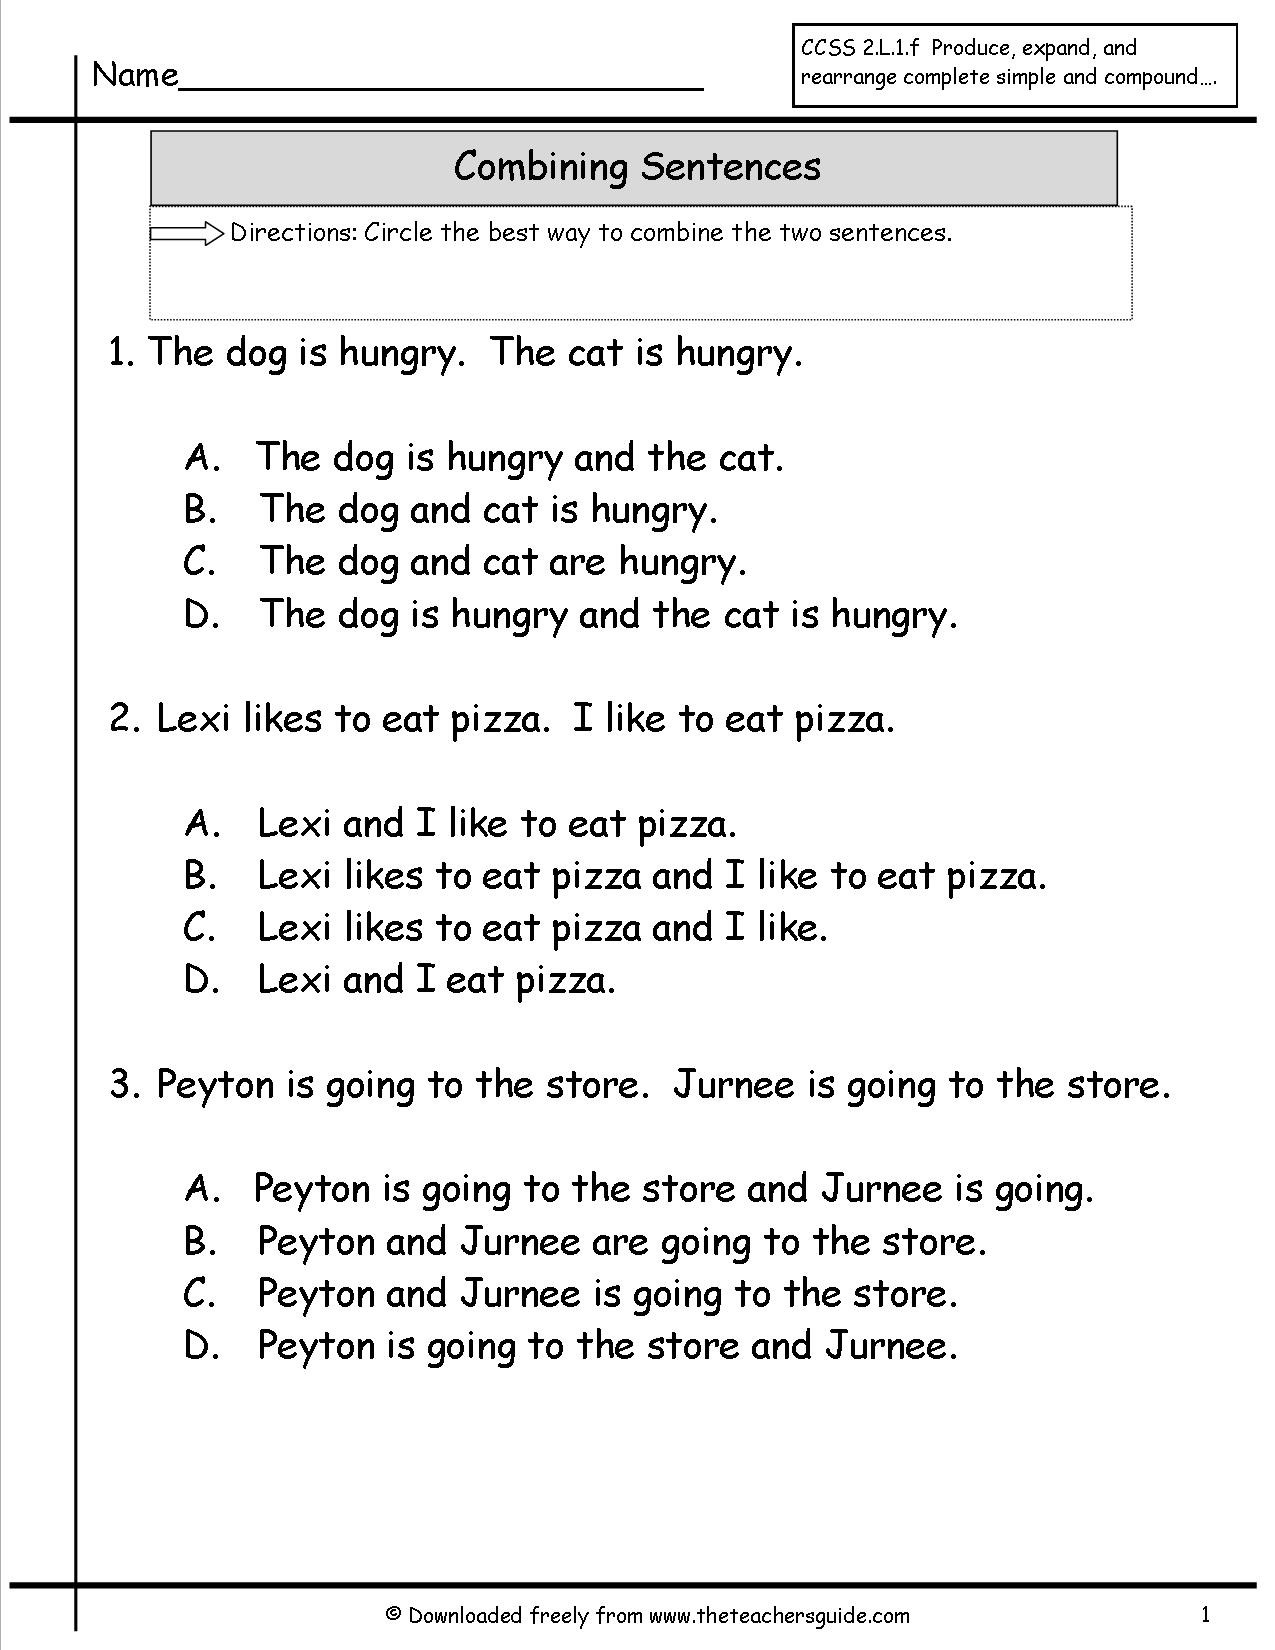 Combining Sentences Worksheets 5th Grade Types Sentences Worksheets Grade 1